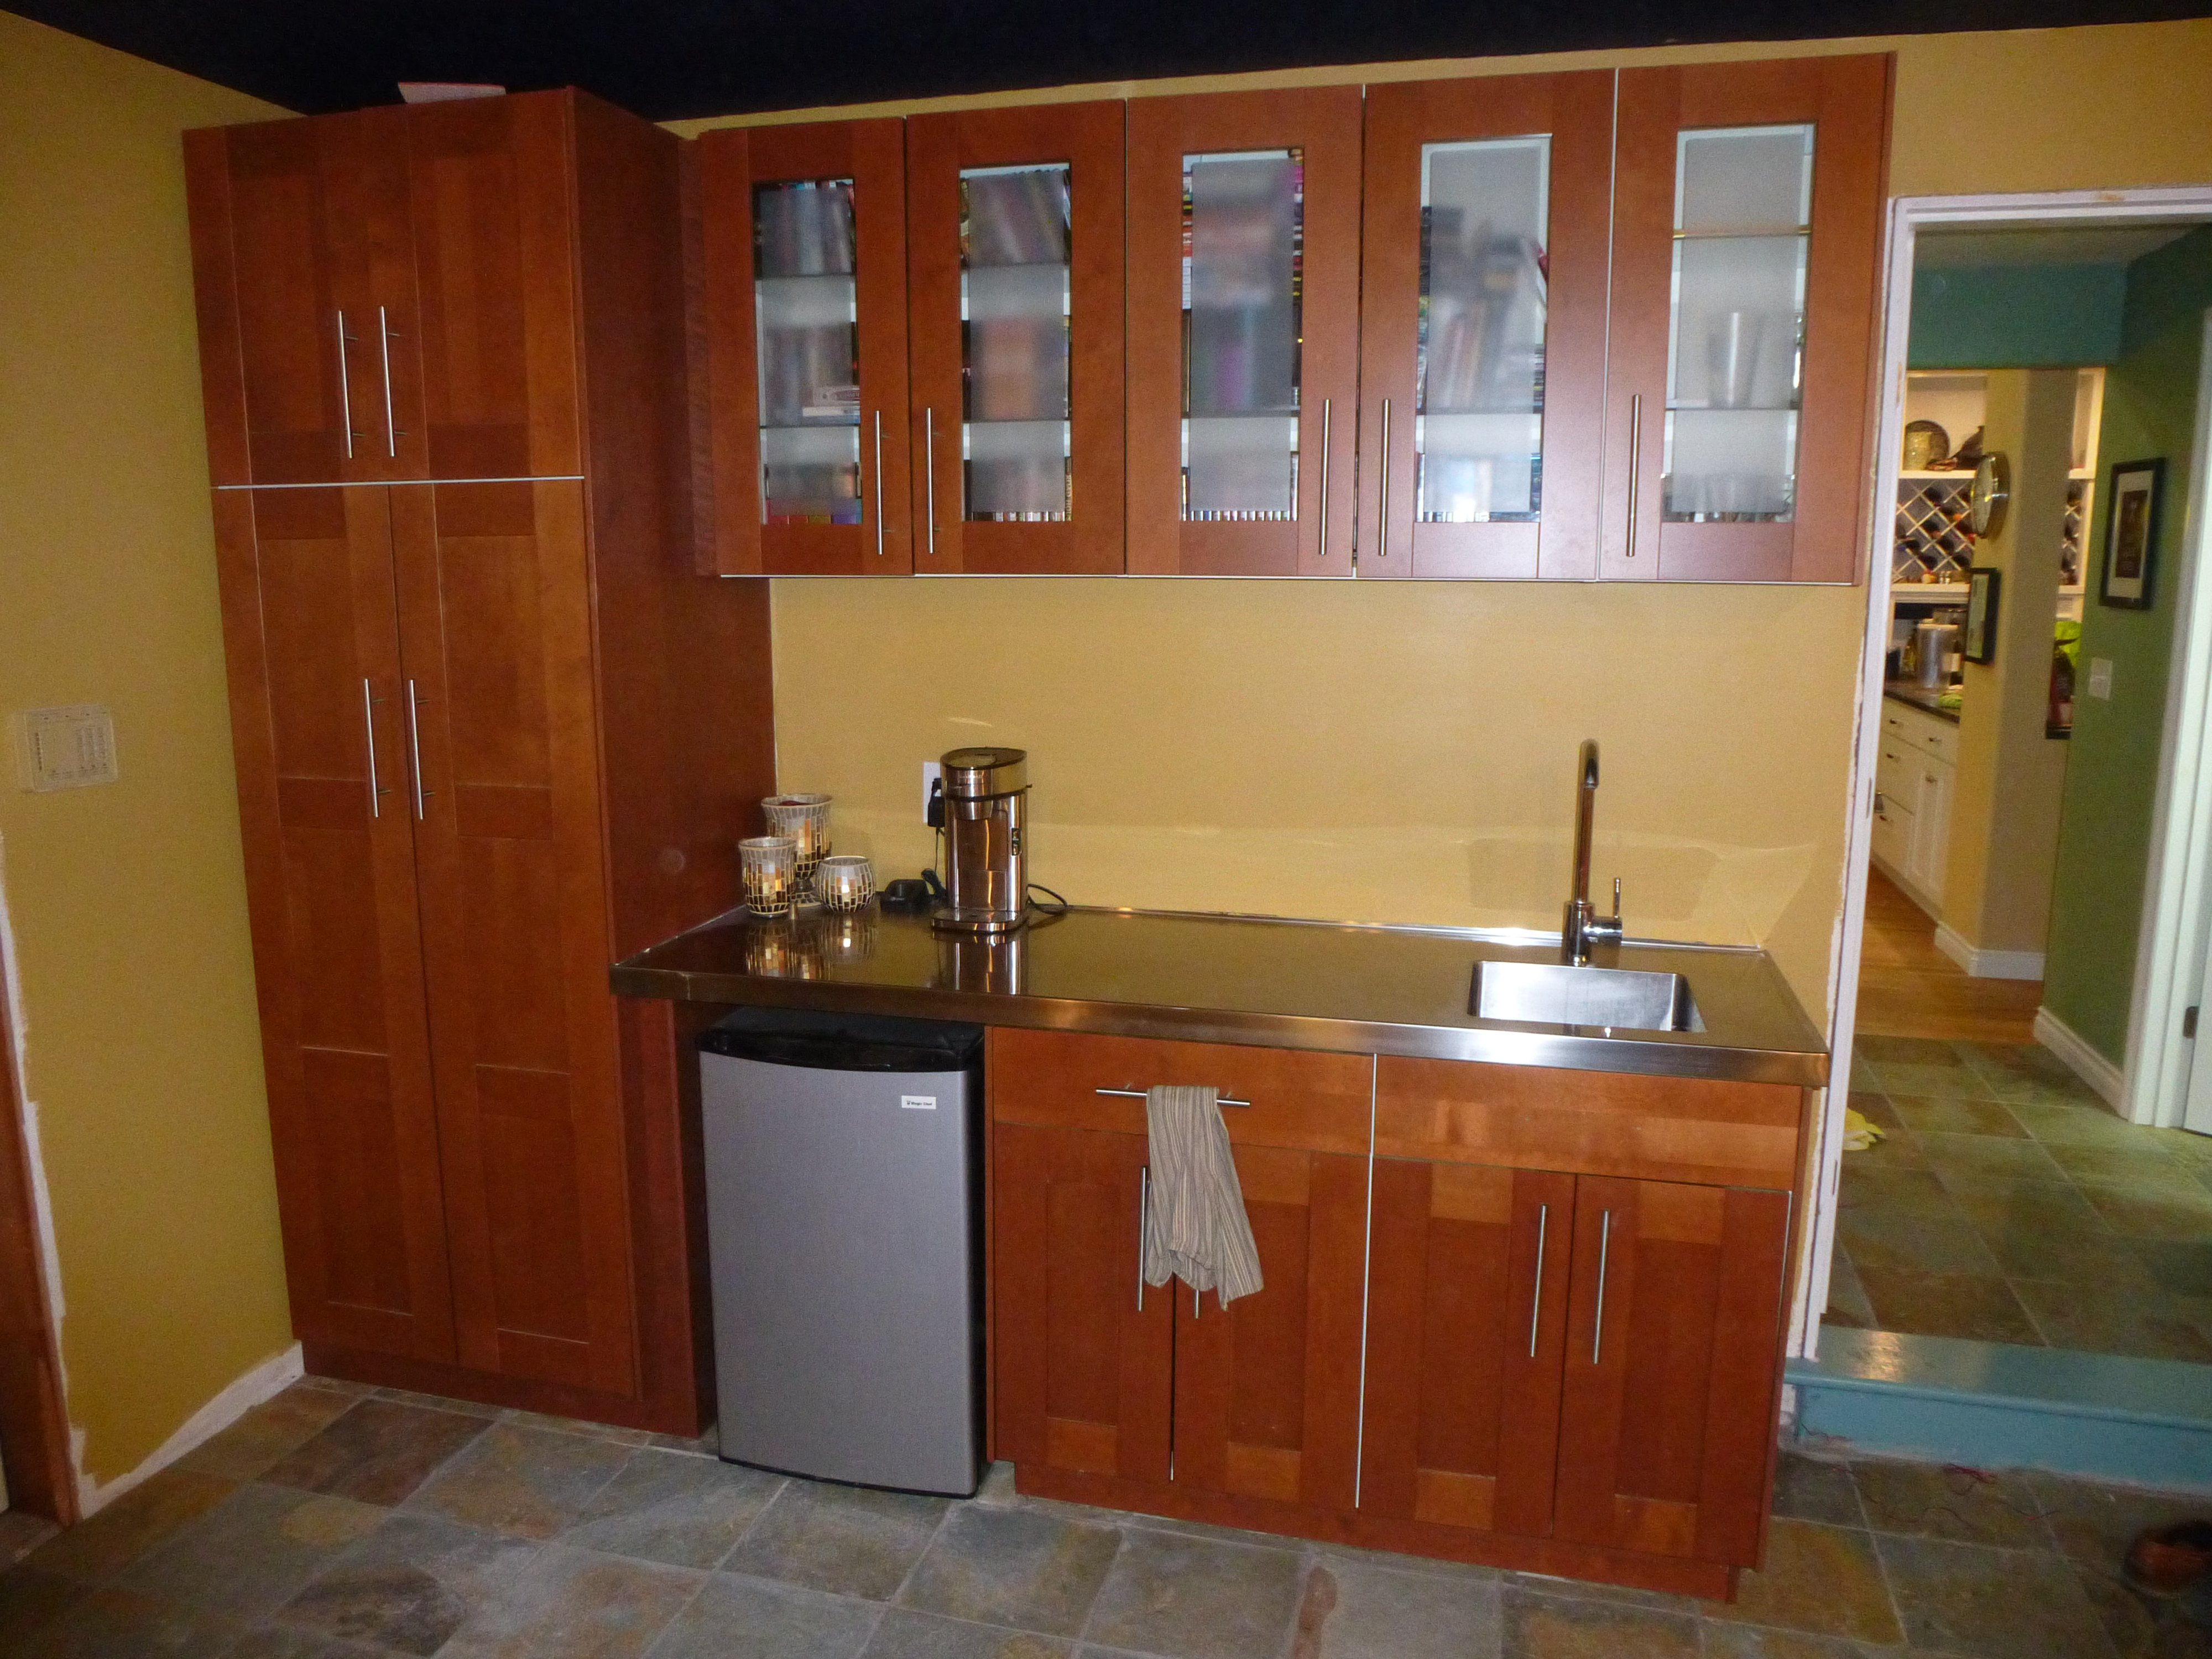 diy snack bar with ikea kitchen cabinets avs forum home theater discussions and reviews